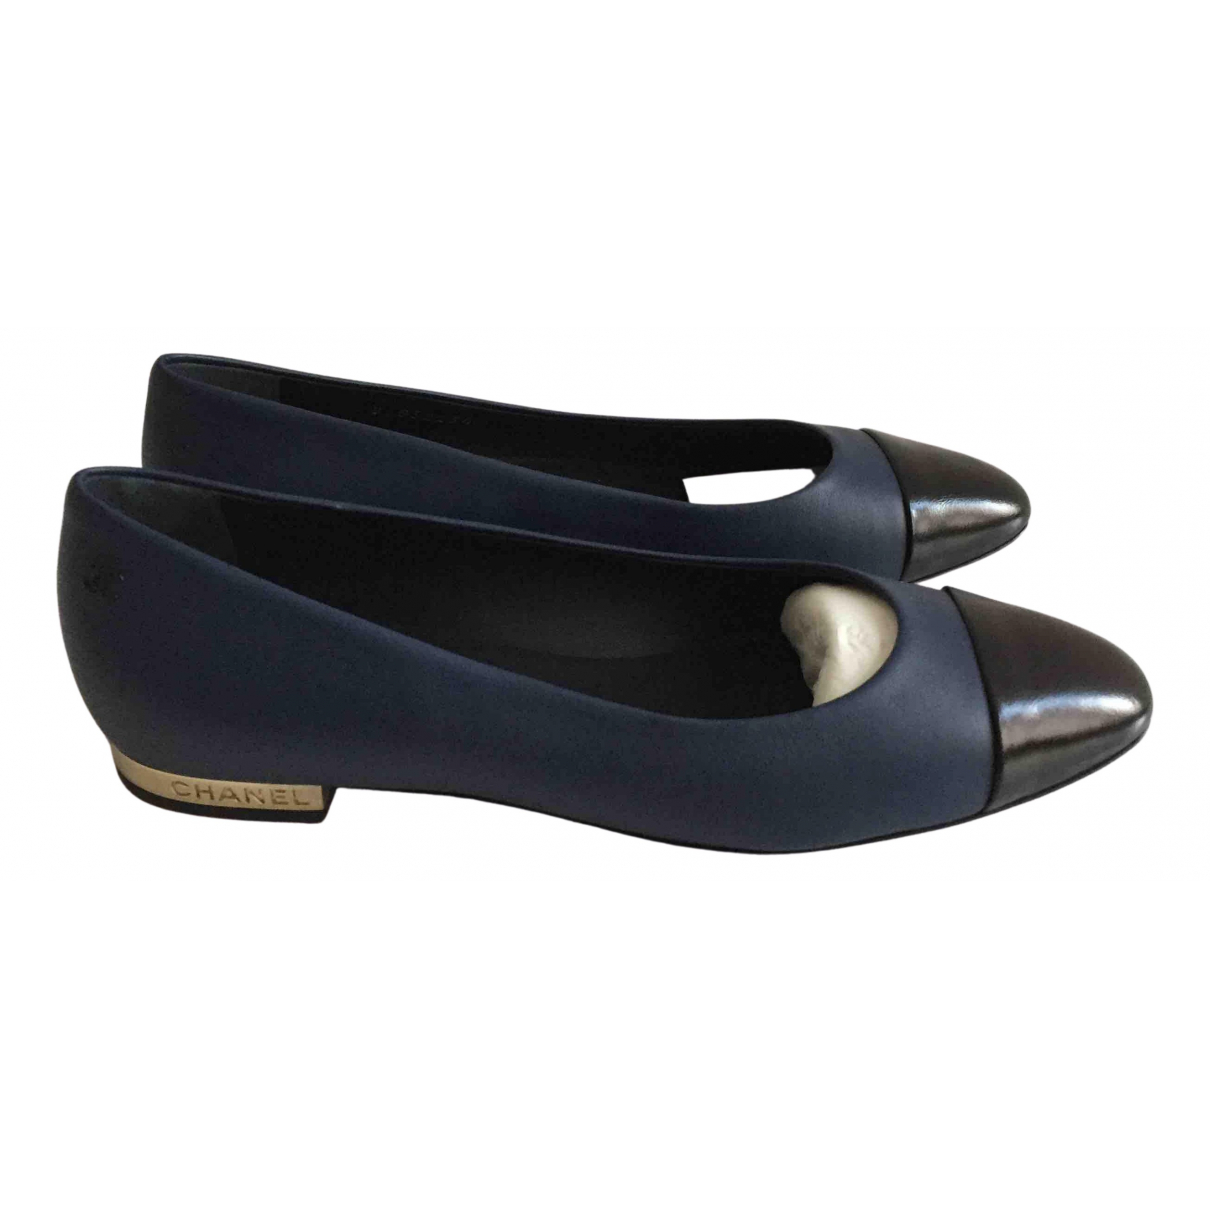 Chanel N Navy Leather Ballet flats for Women 38 EU